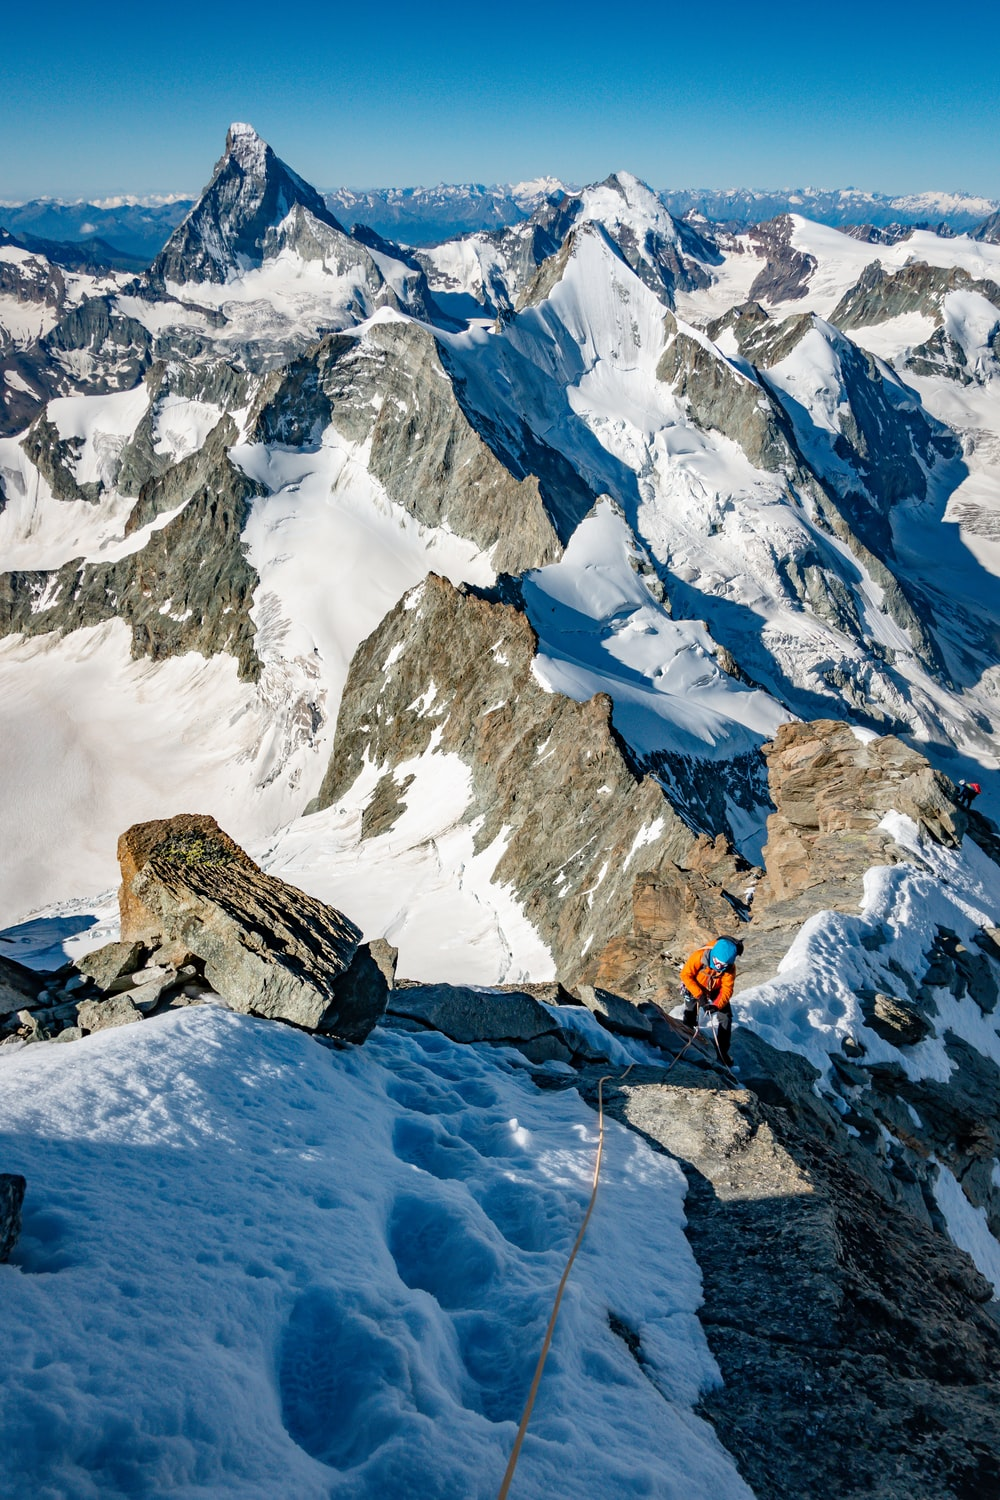 person in orange jacket and black pants standing on snow covered mountain during daytime